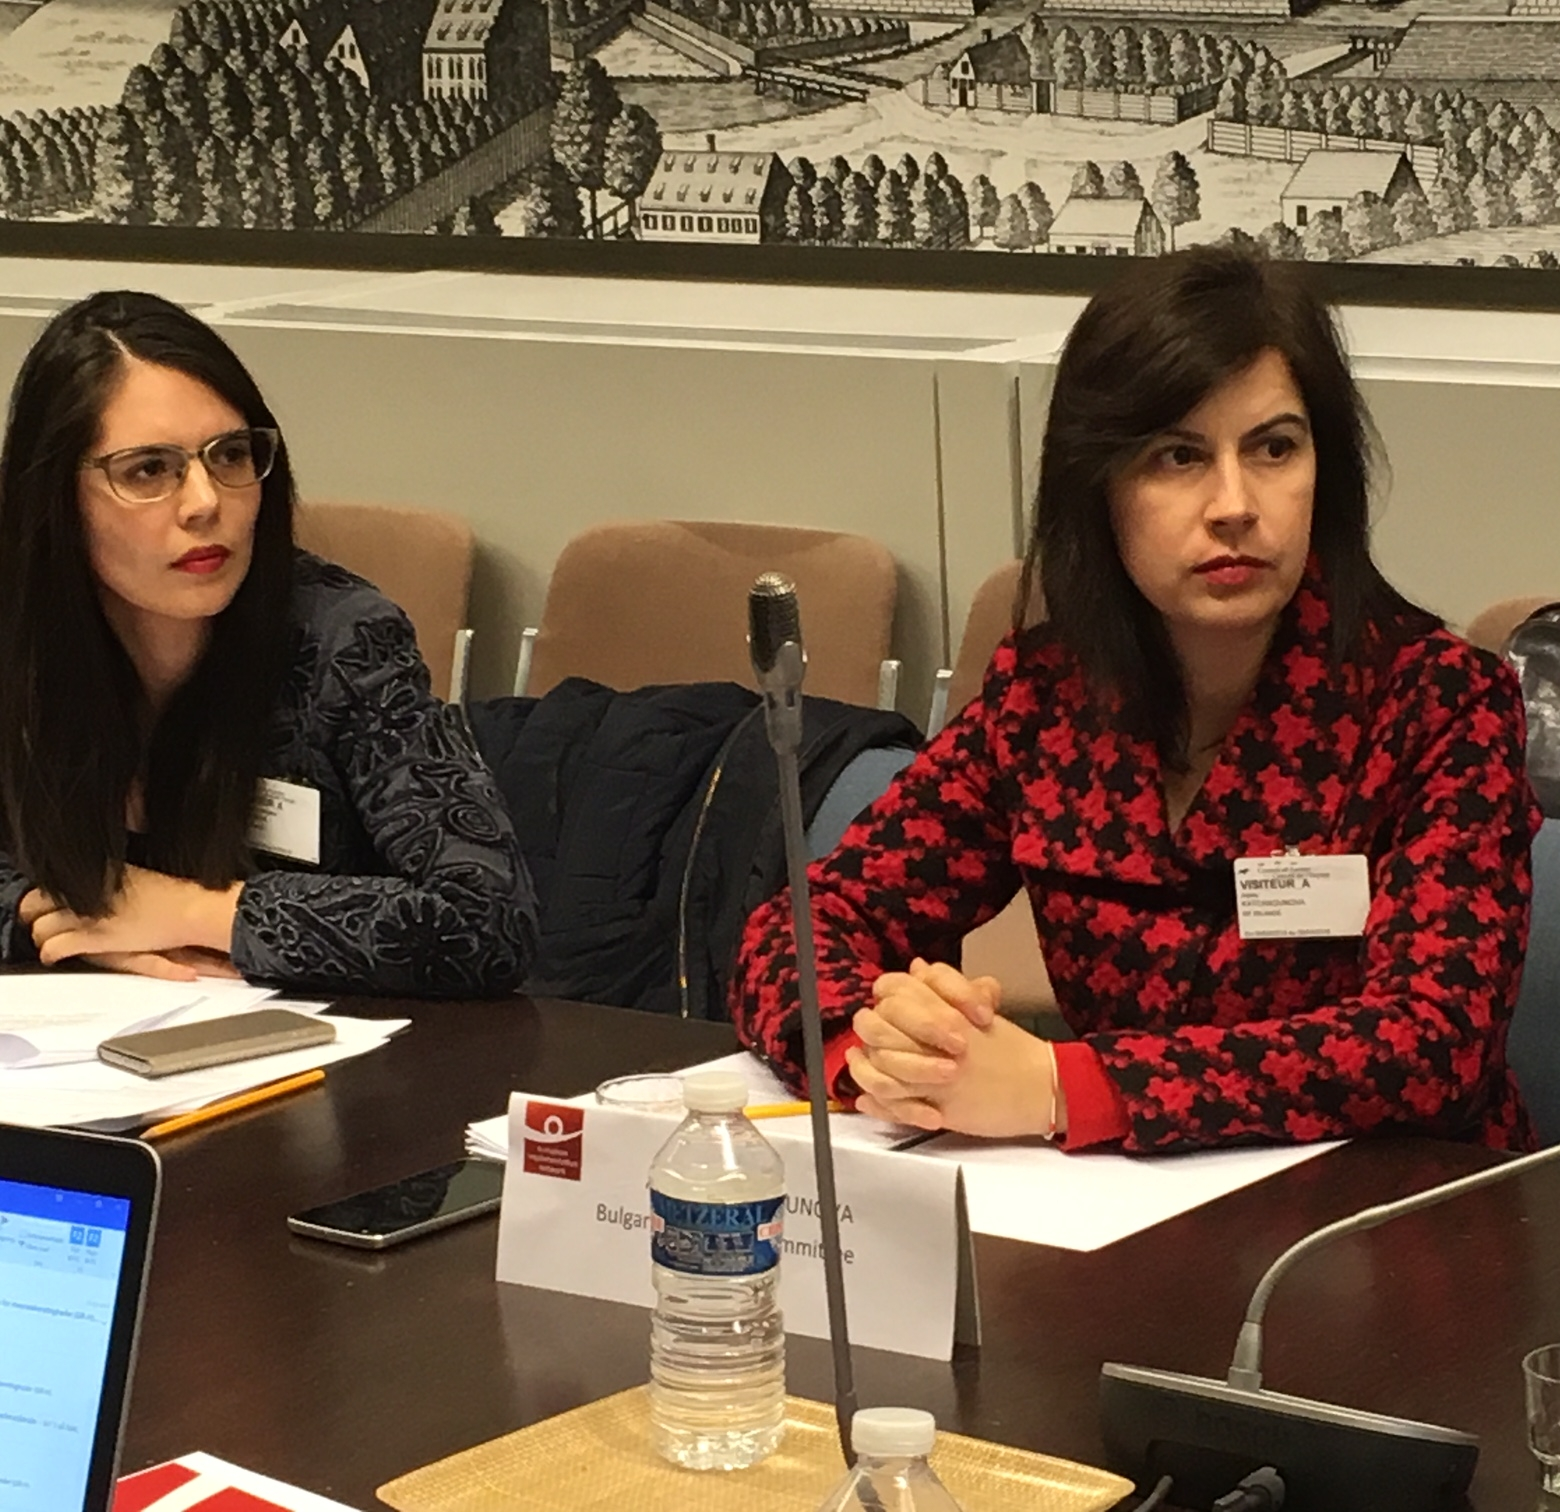 Ecaterina-Georgiana Gheorghe, Association for the Defence of Human Rights in Romania, the Helsinki-Committee, and Adela Katchaounova, Bulgarian Helsinki Committee. Photo: EIN